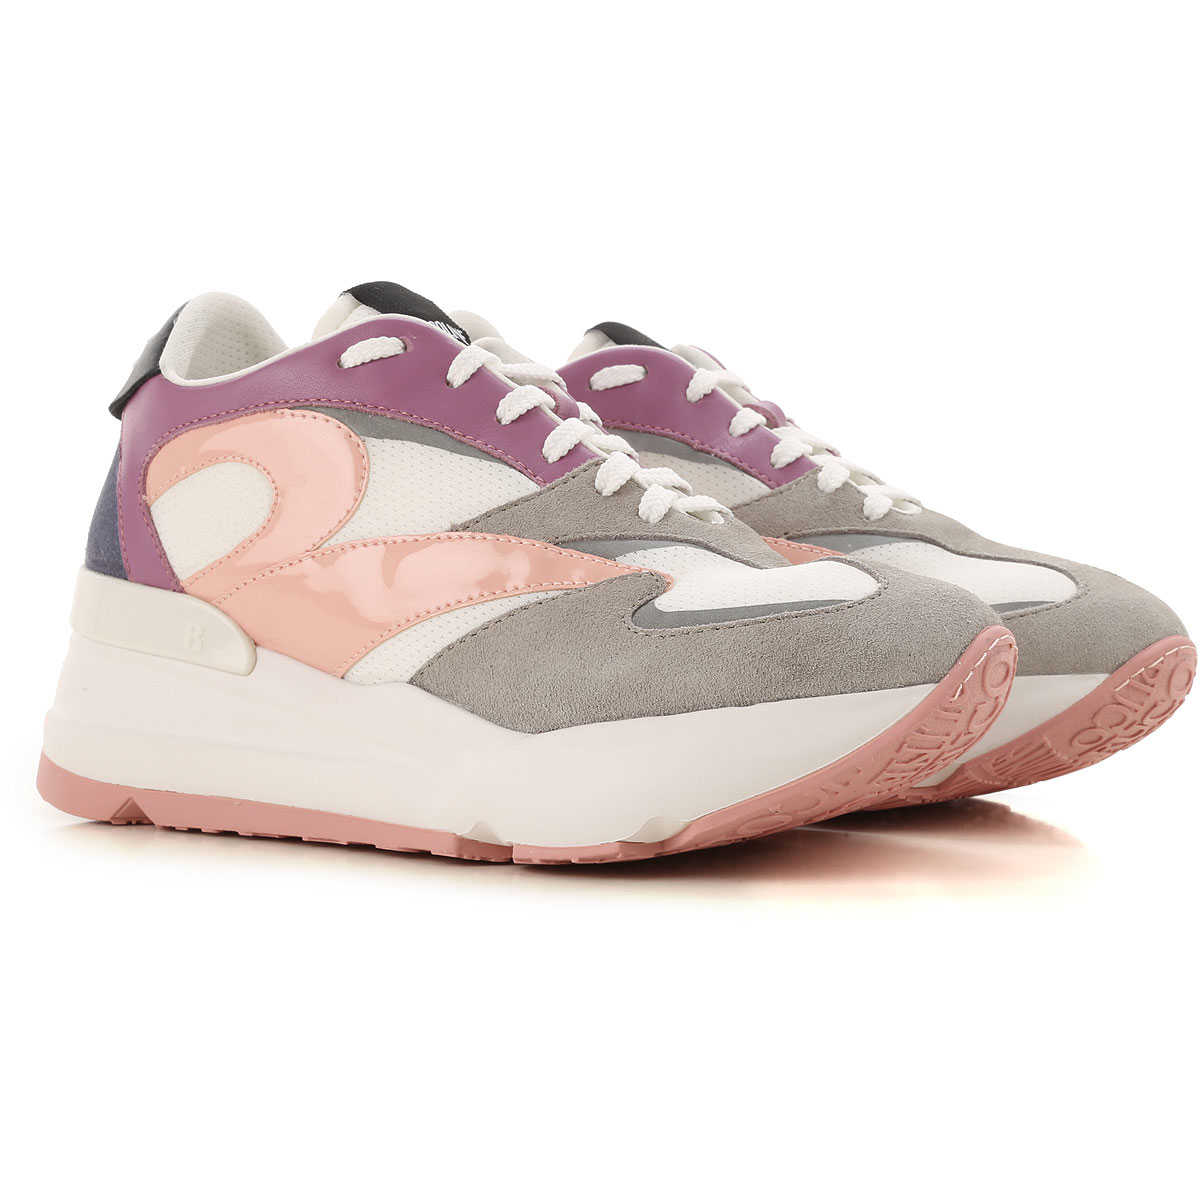 Ruco Line Sneakers for Women On Sale White SE - GOOFASH